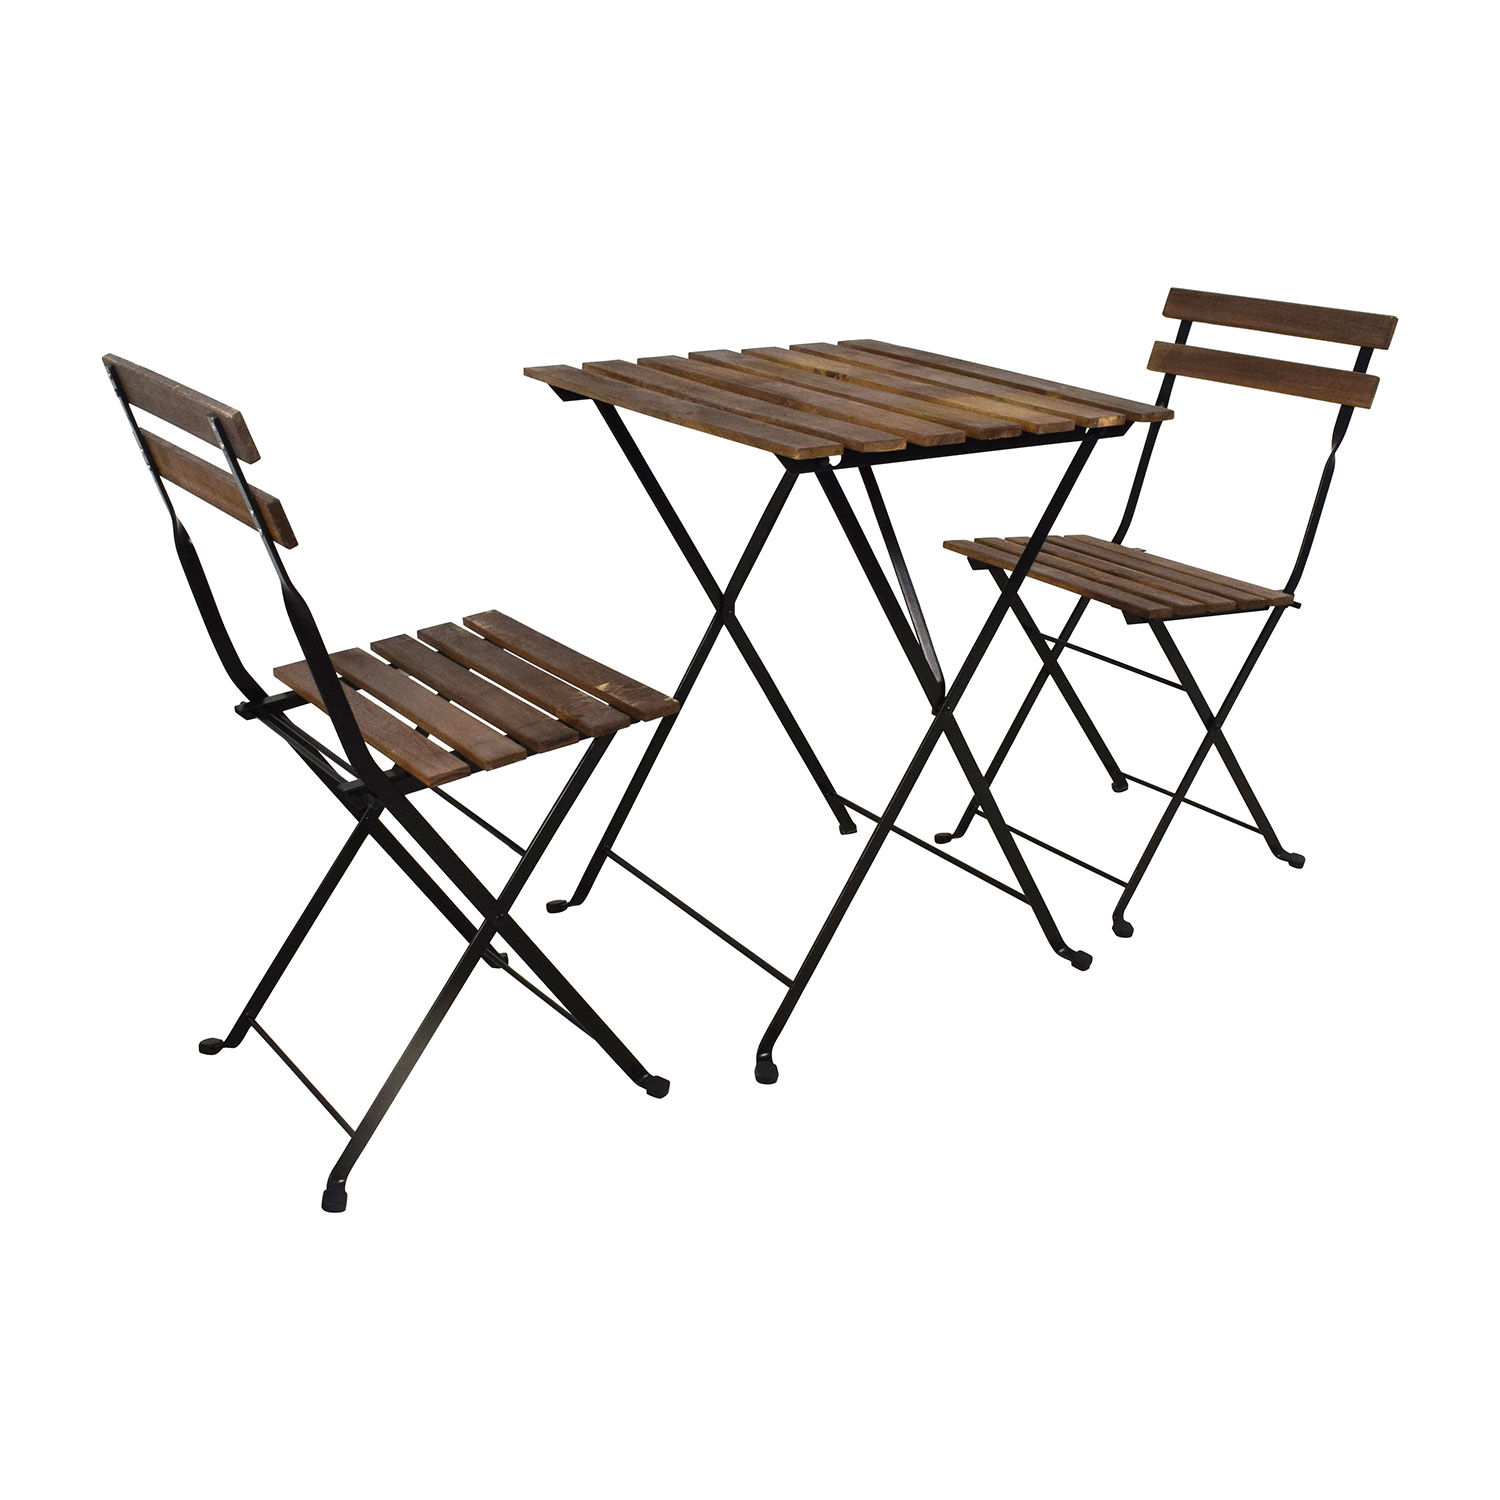 ikea tarno folding table and two folding chairs ikea